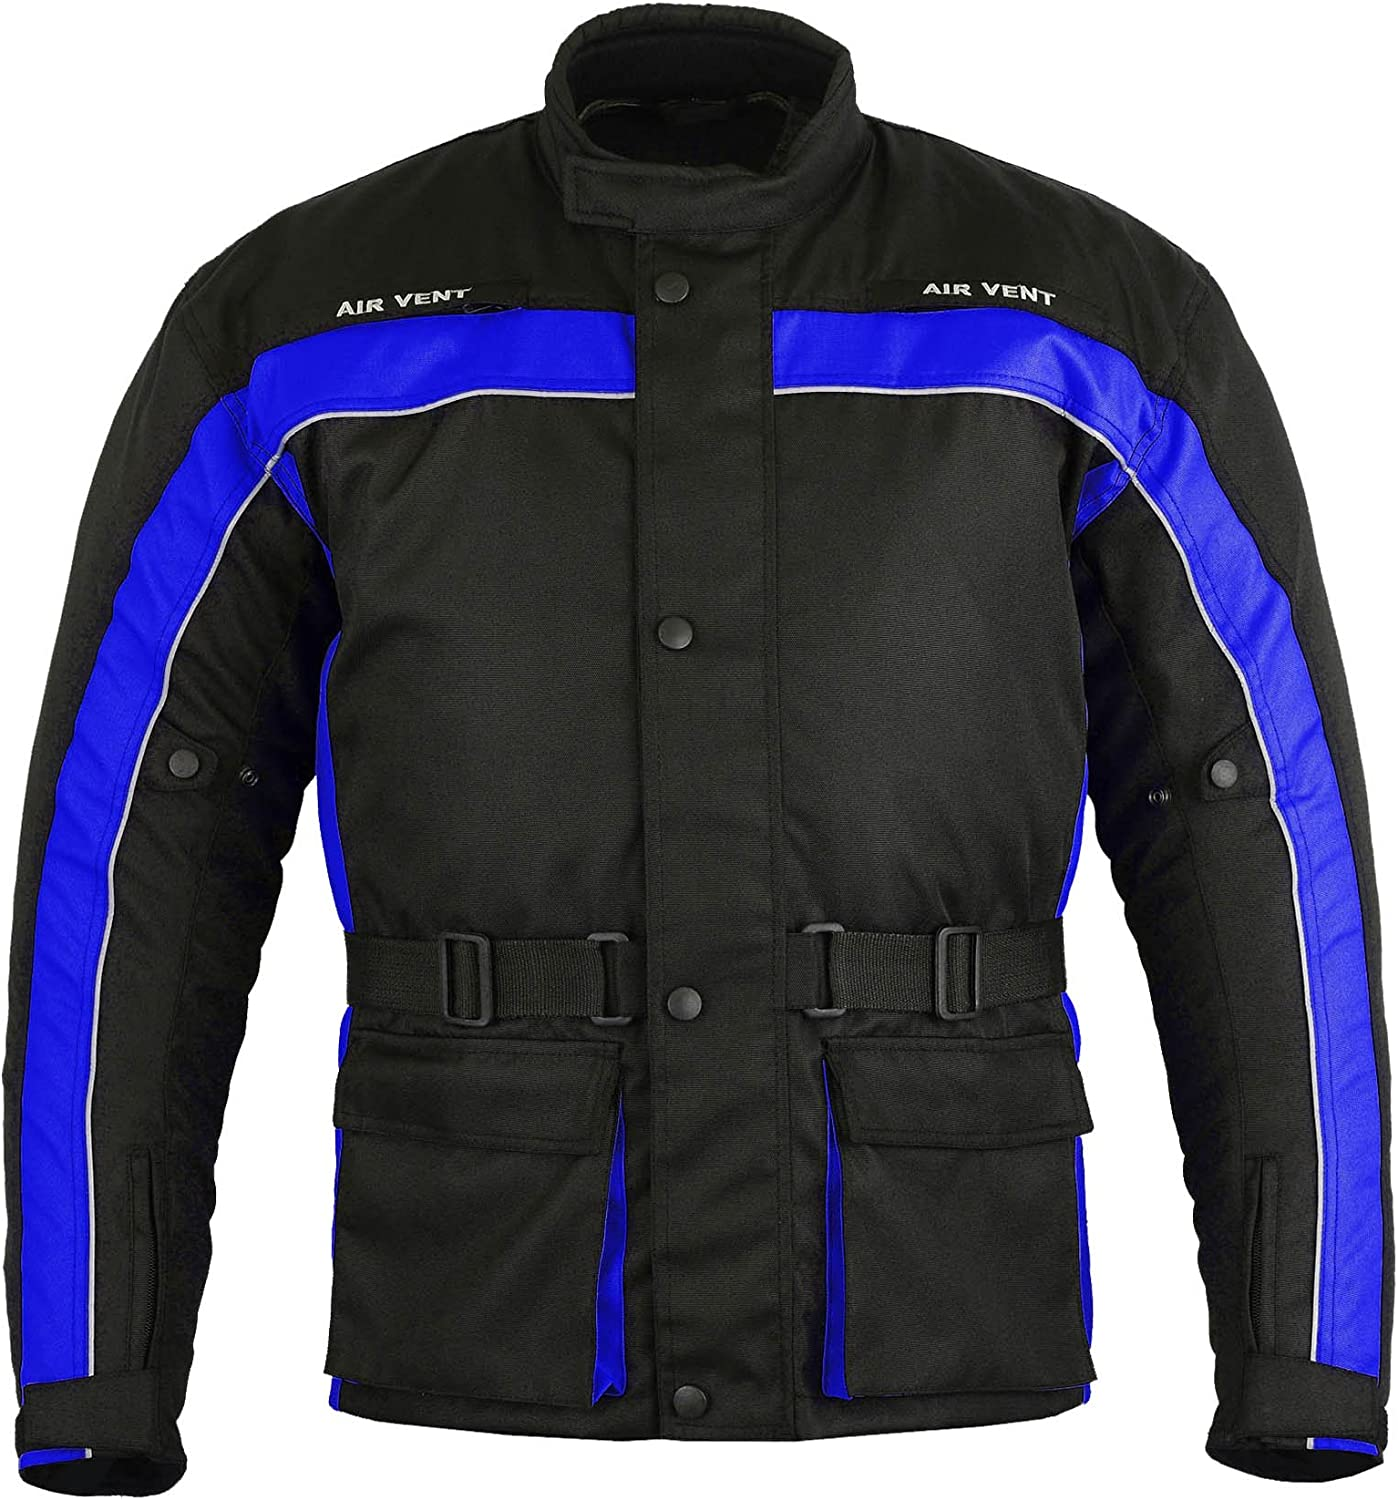 Full Black, 5X-Large Waterproof All Weather Motorbike Jacket Coat Motorcycle Gears in Cordura Fabric and CE Approved Armour Long Coat Style Design